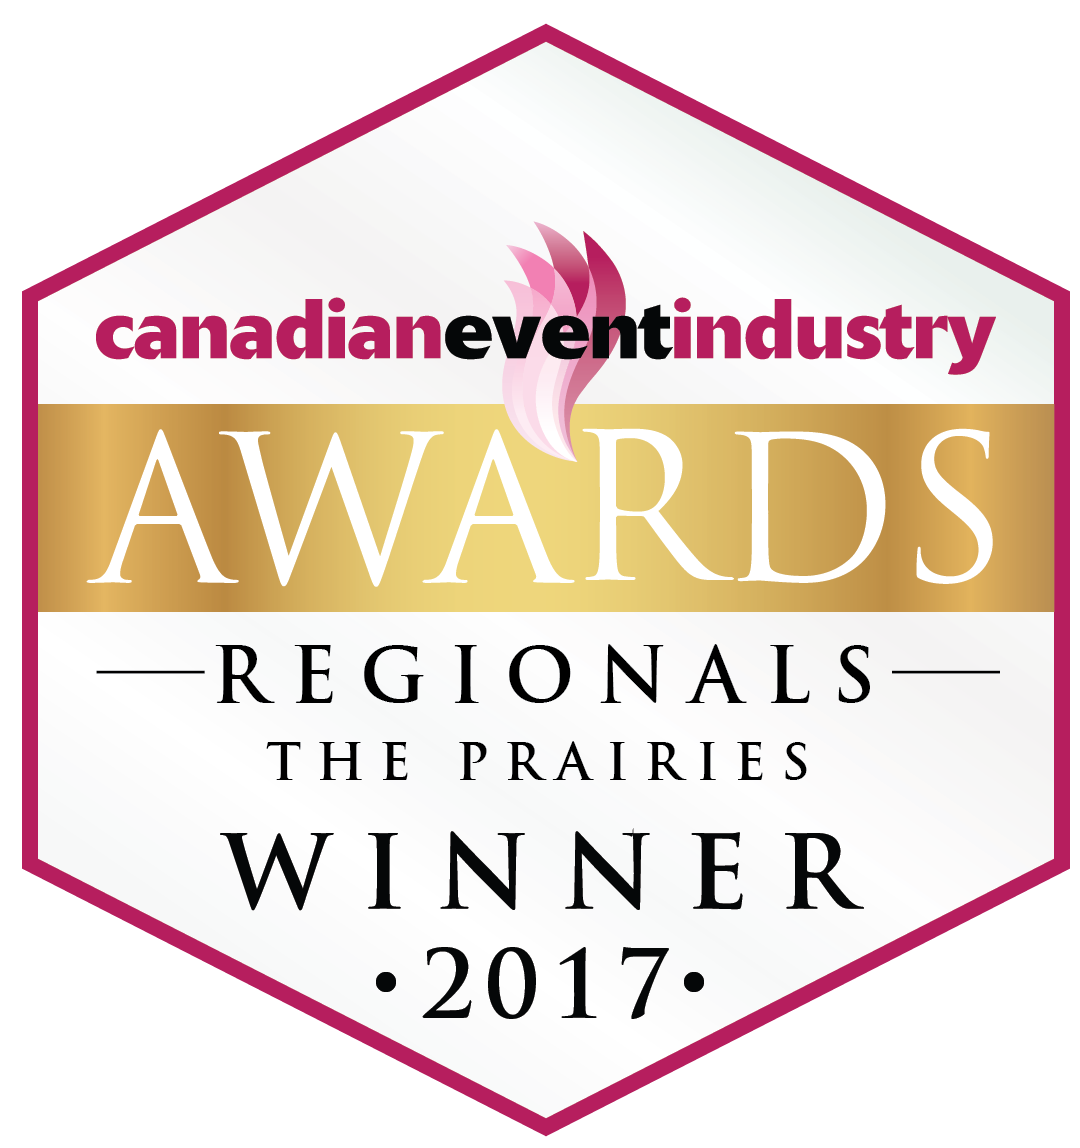 Canadian Event Industry Awards Regionals The Prairie Winner 2017